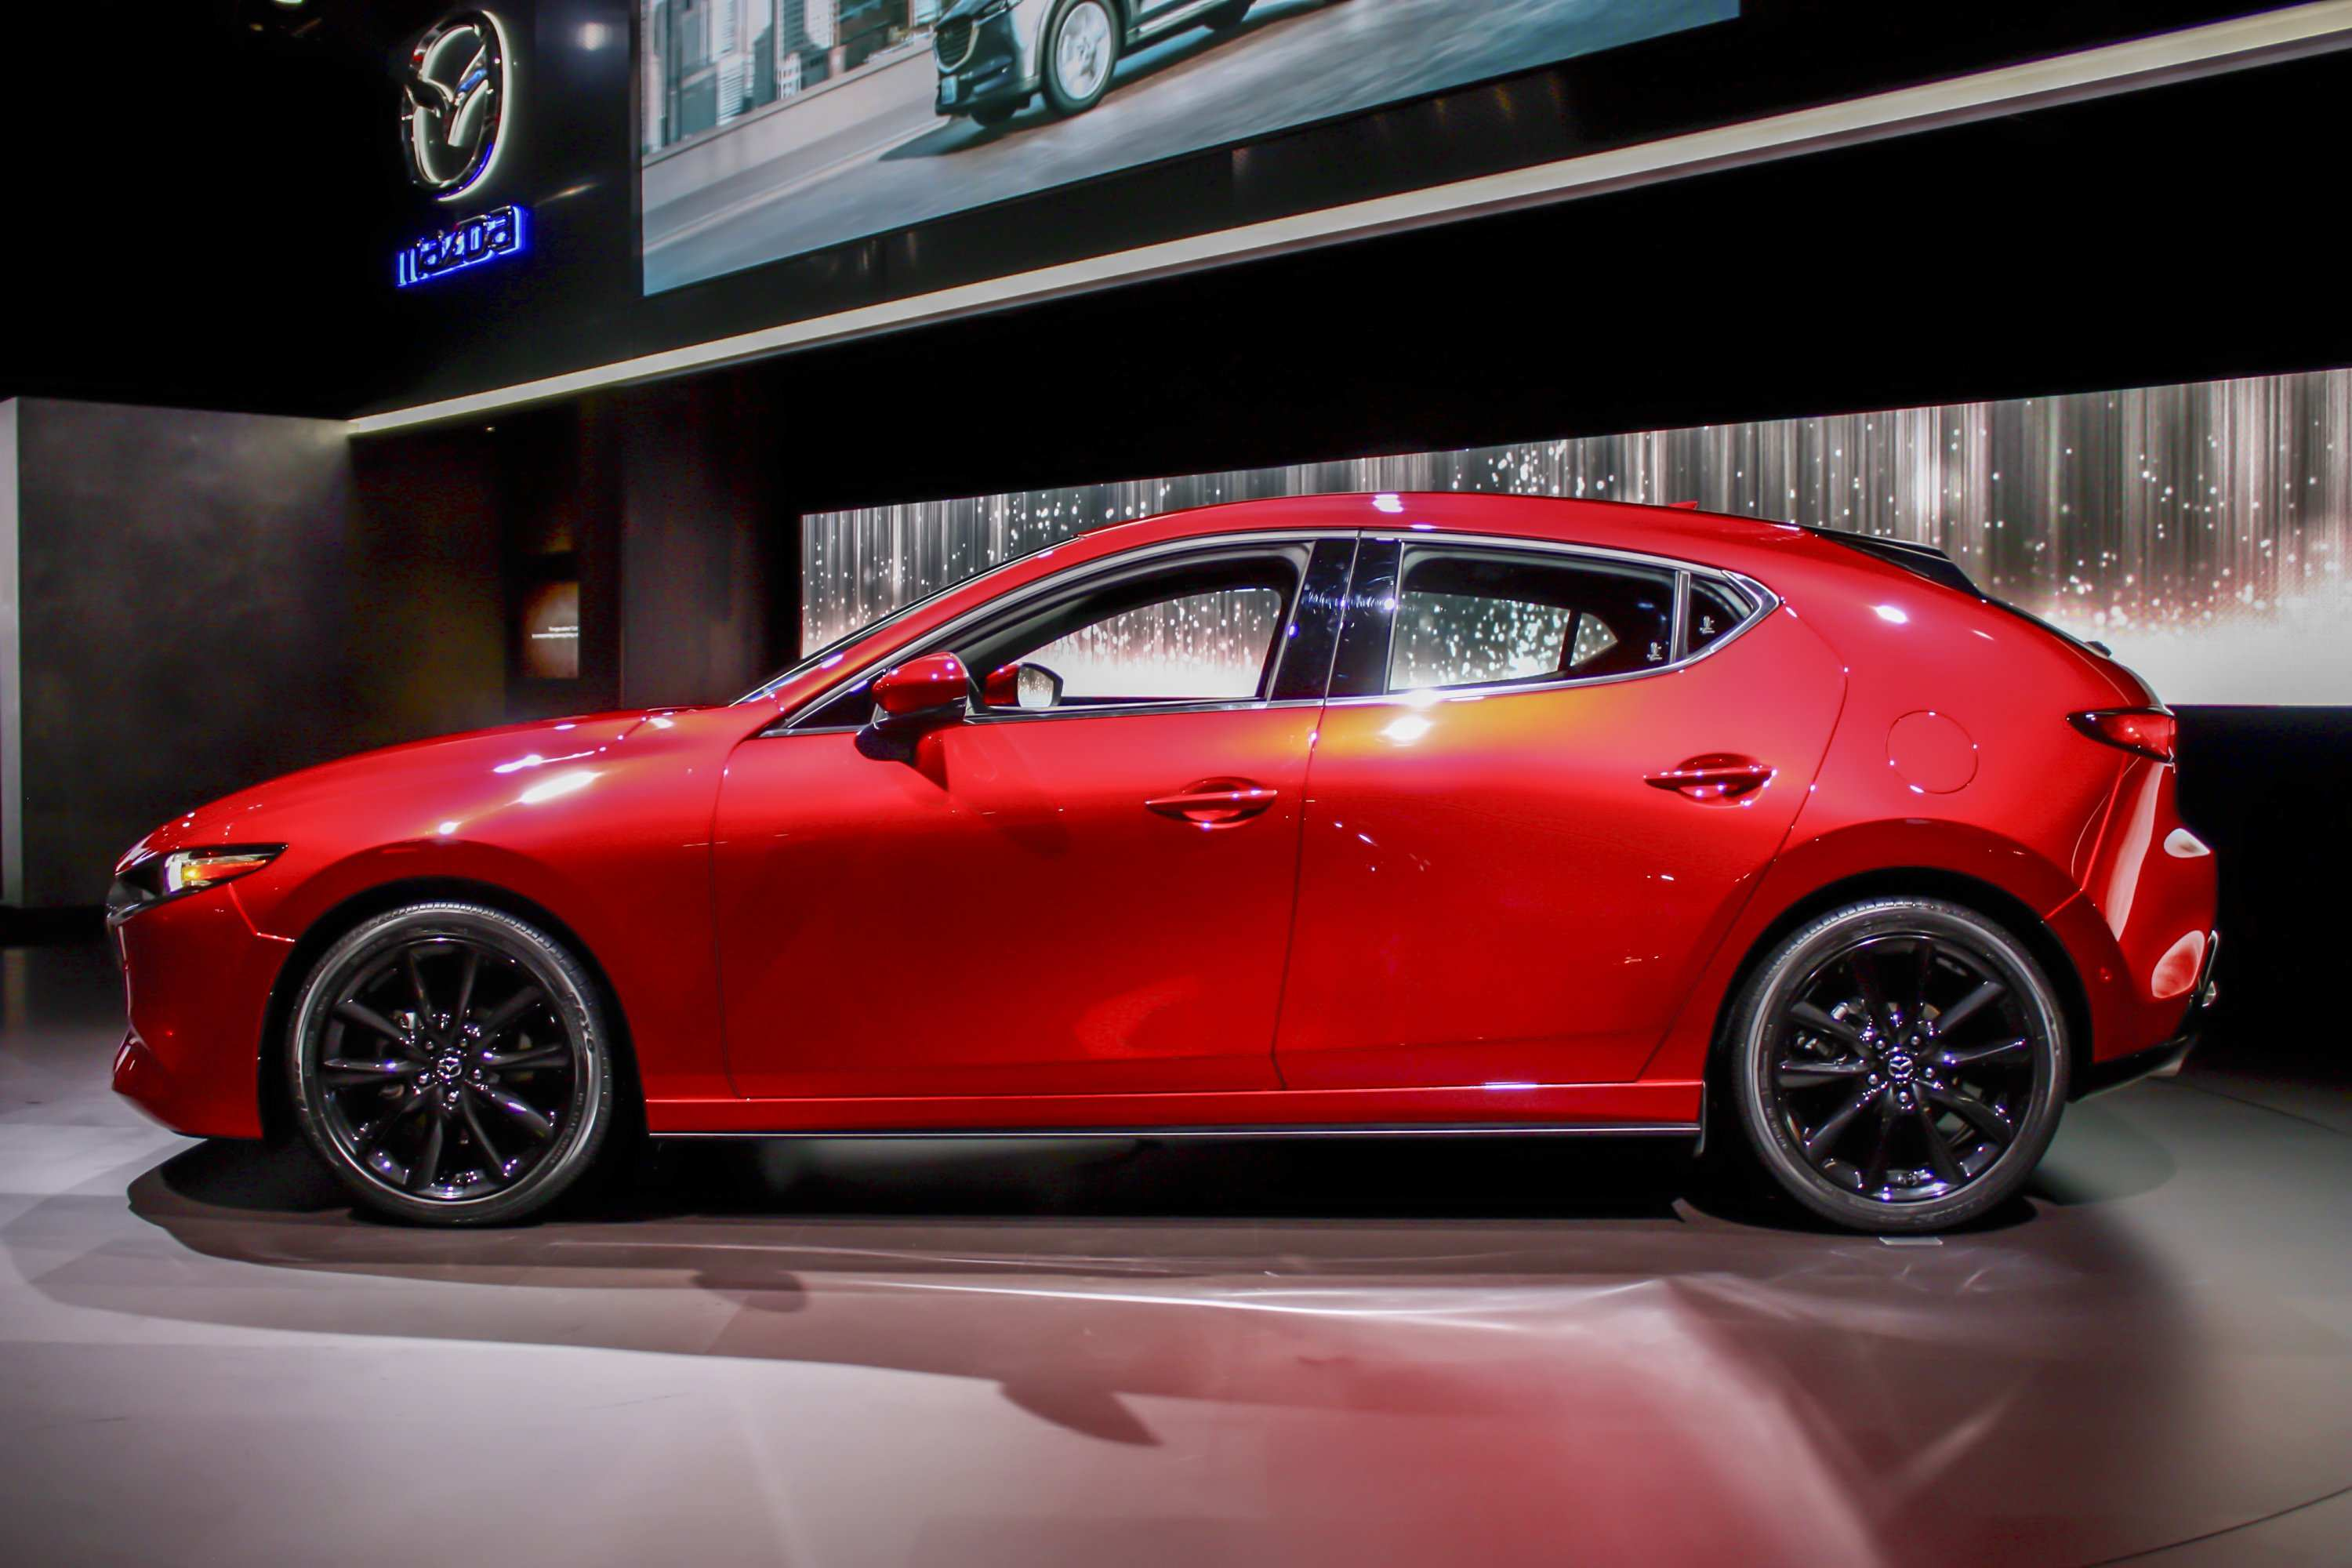 90 Best 2020 Mazda 3 Images Style